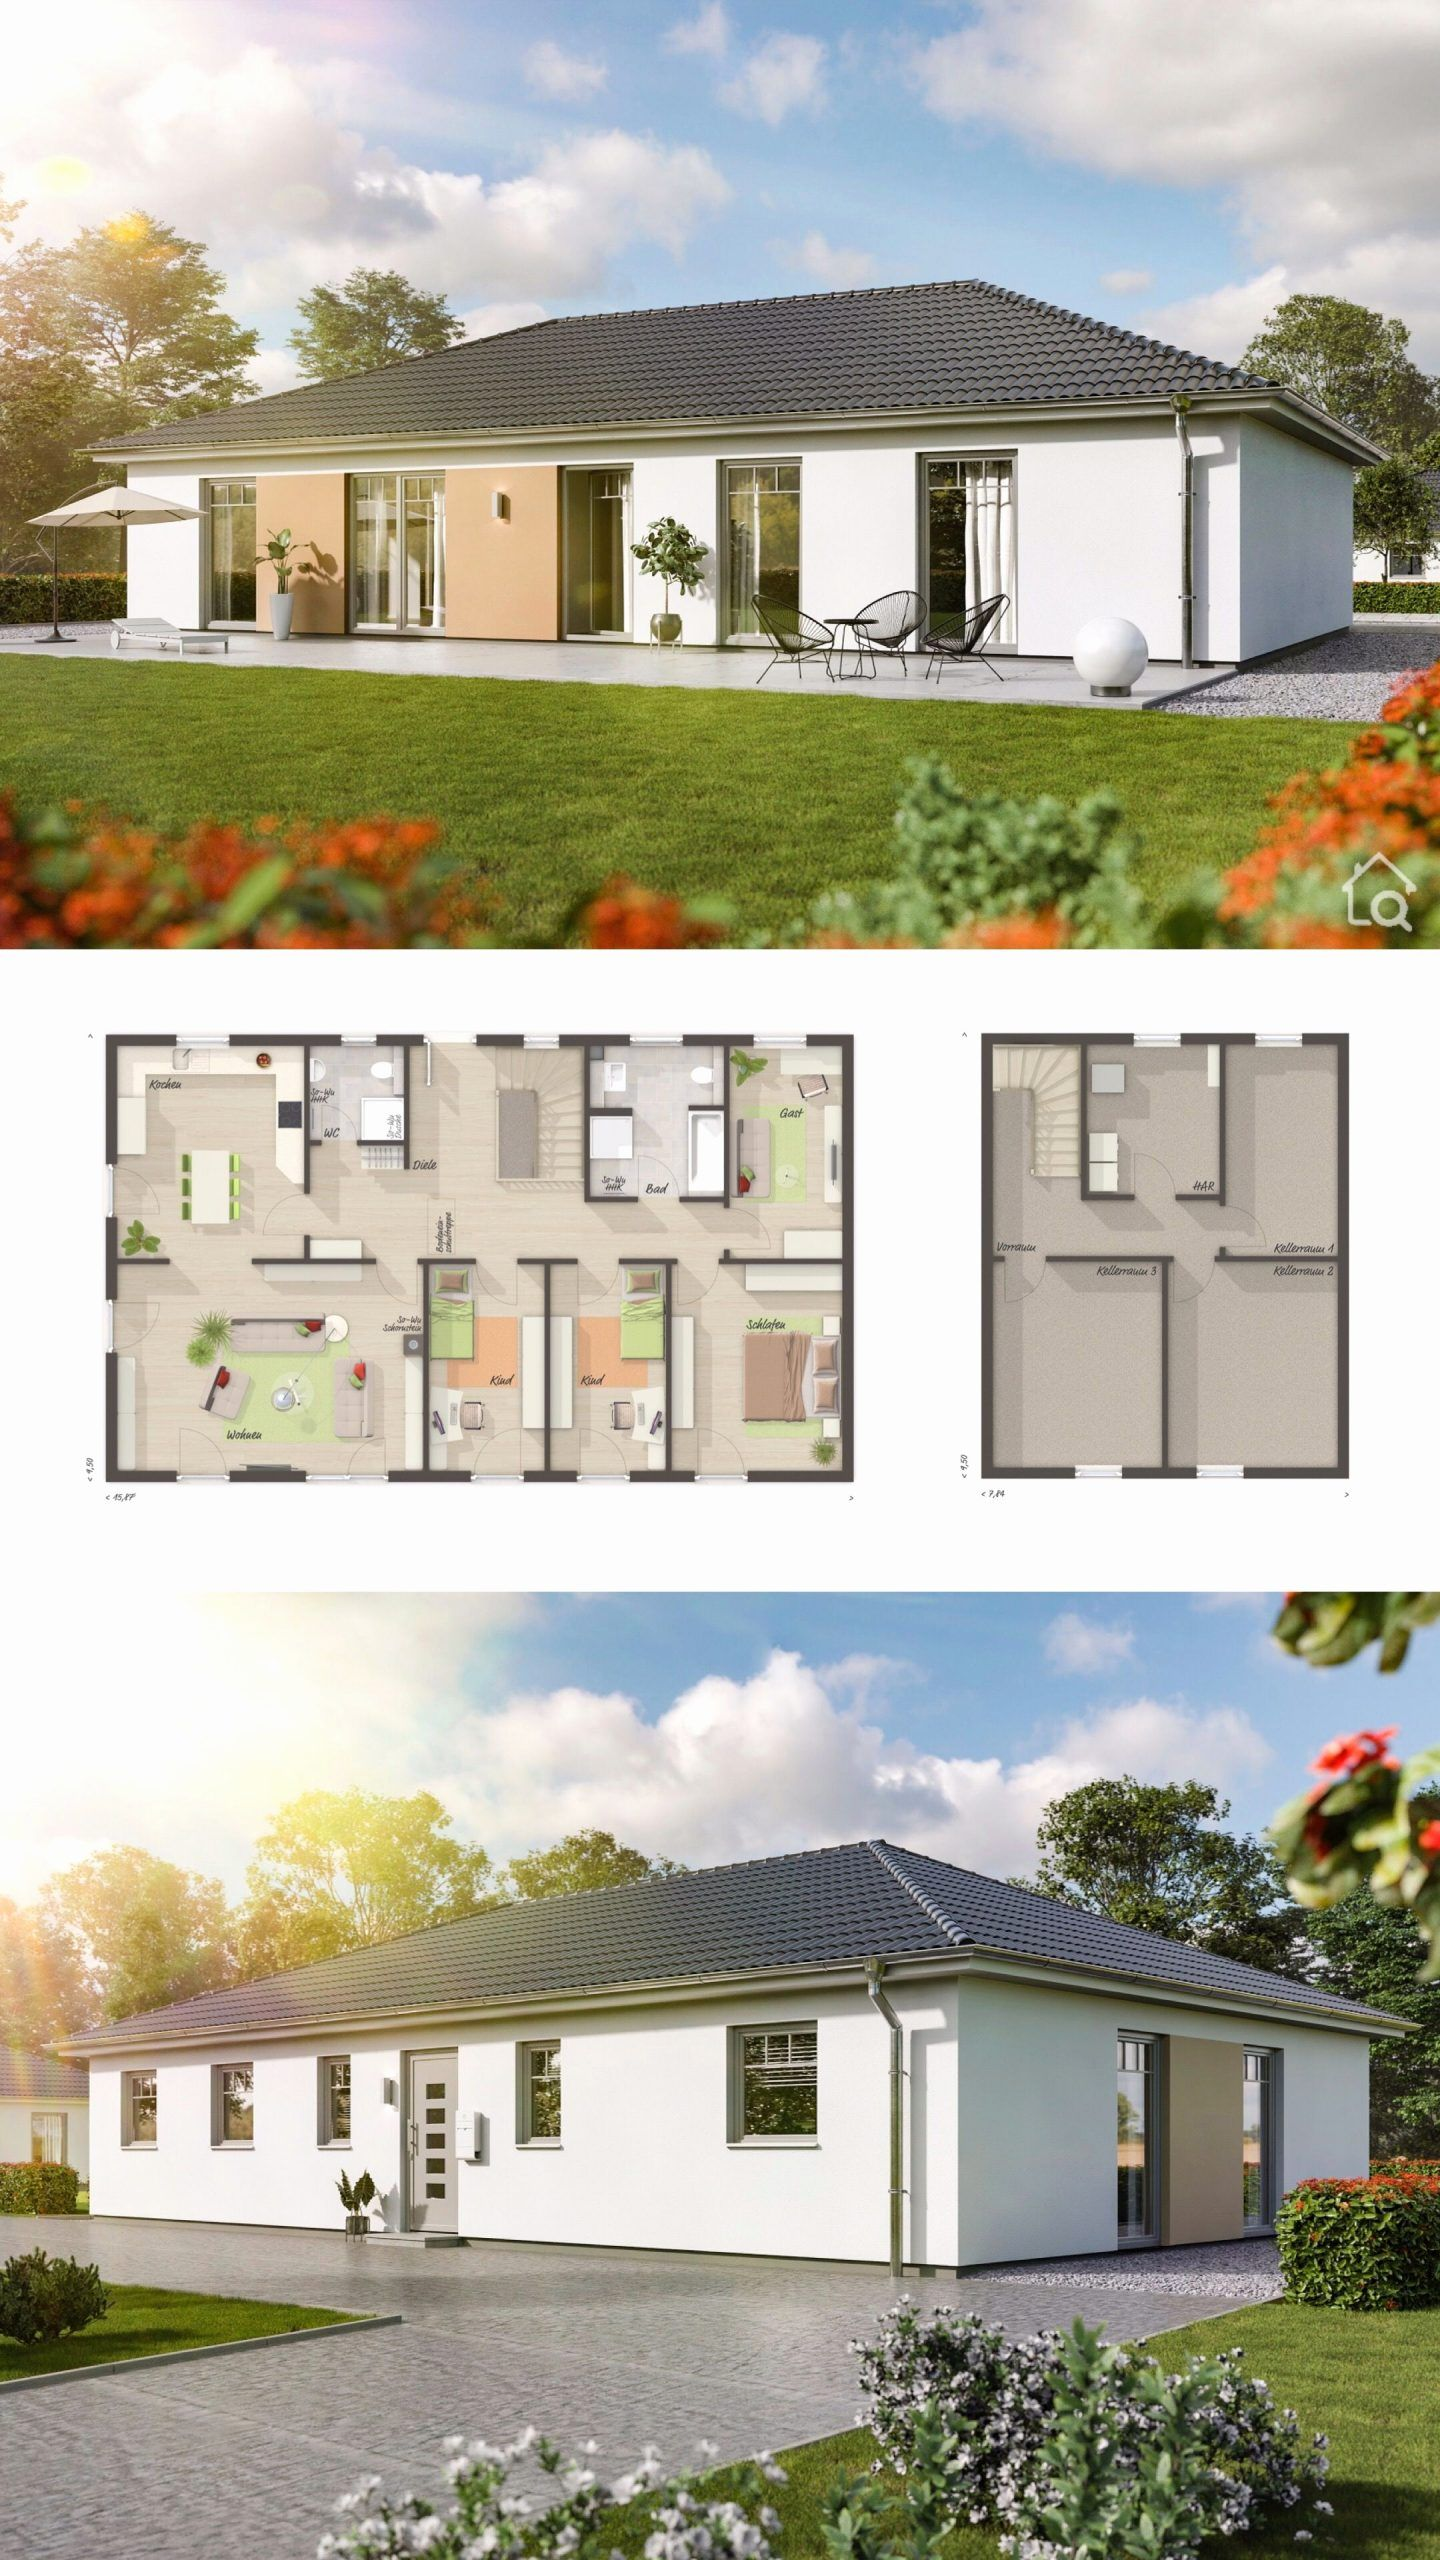 Hip Roof House Plans Contemporary New Bungalow House Architecture Design Floor Plan With 4 B Cottage Style House Plans Colonial House Plans Cottage House Plans